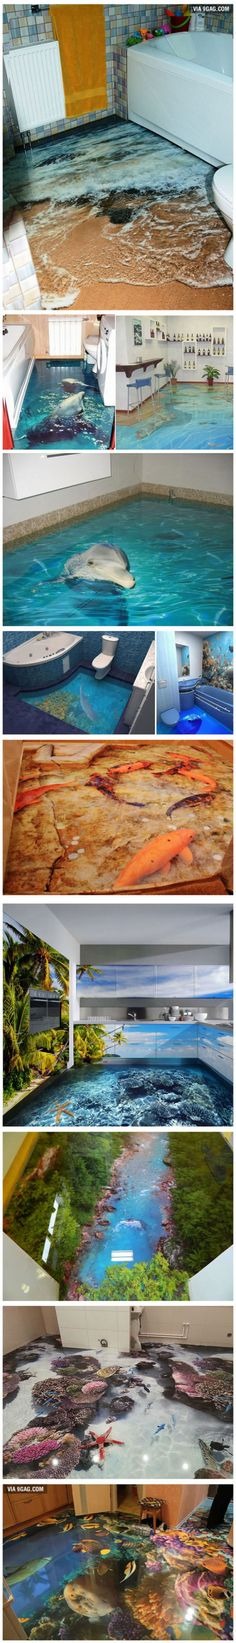 Awesome 3D Floor Designs That Turn Your Home Into An Ocean